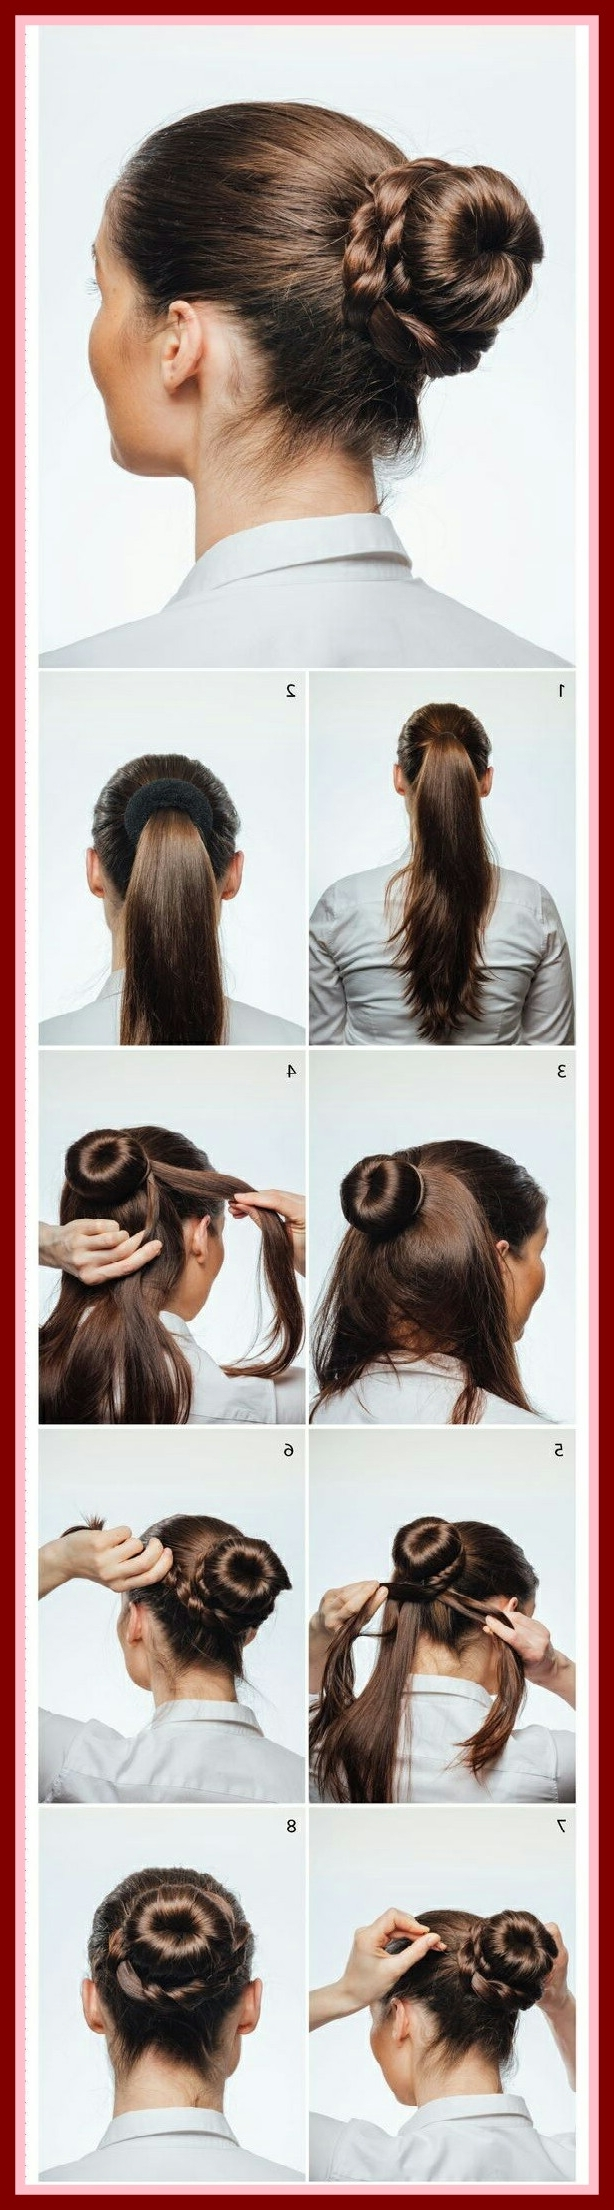 Best Wedding Hair Styles Bridal Of Hairstyles To Cover Big Ears Throughout Popular Wedding Hairstyles That Cover Ears (View 5 of 15)